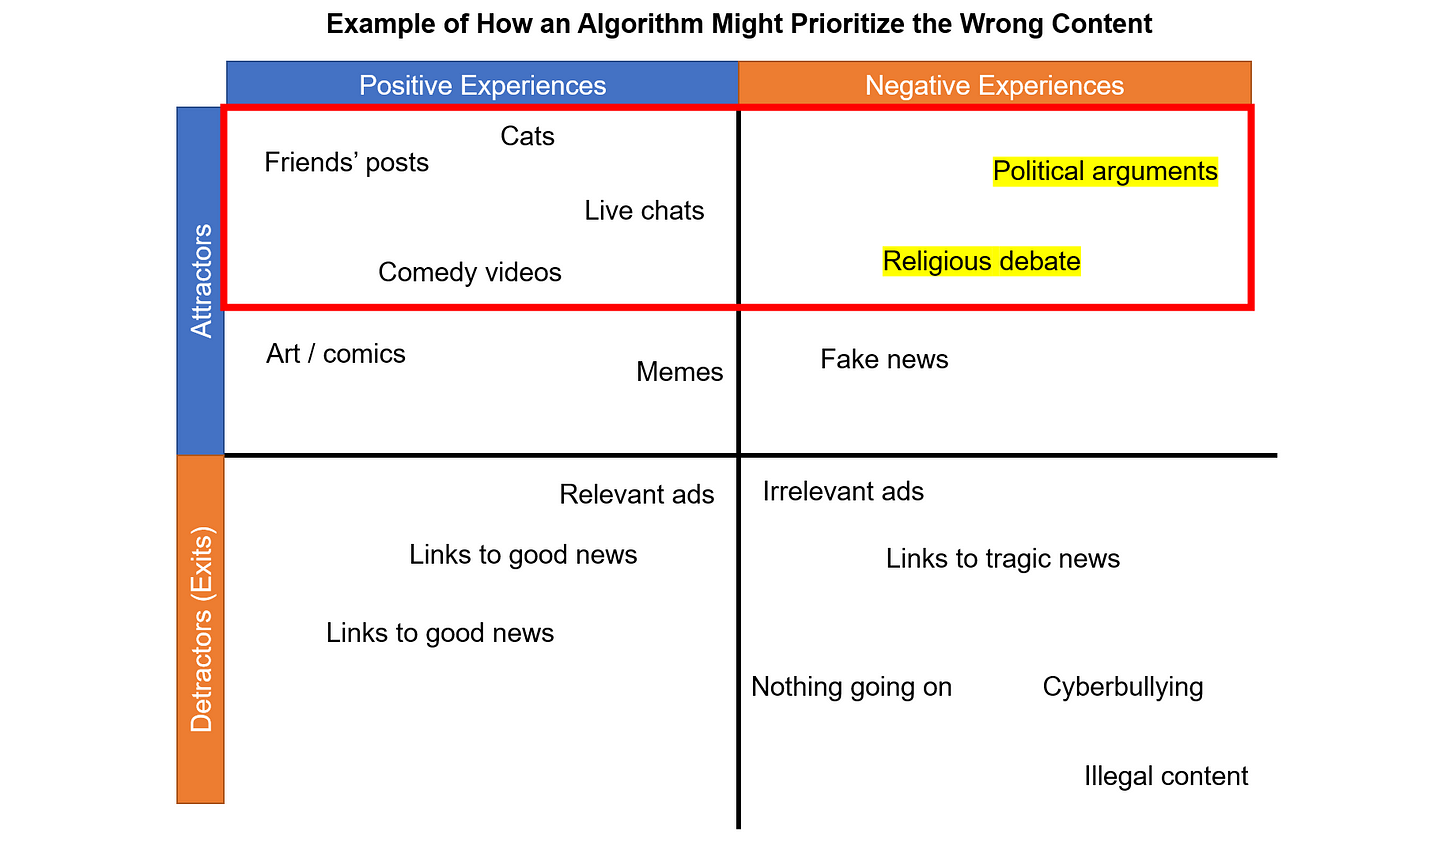 Example of How an Algorithm Might Prioritize the Wrong Content